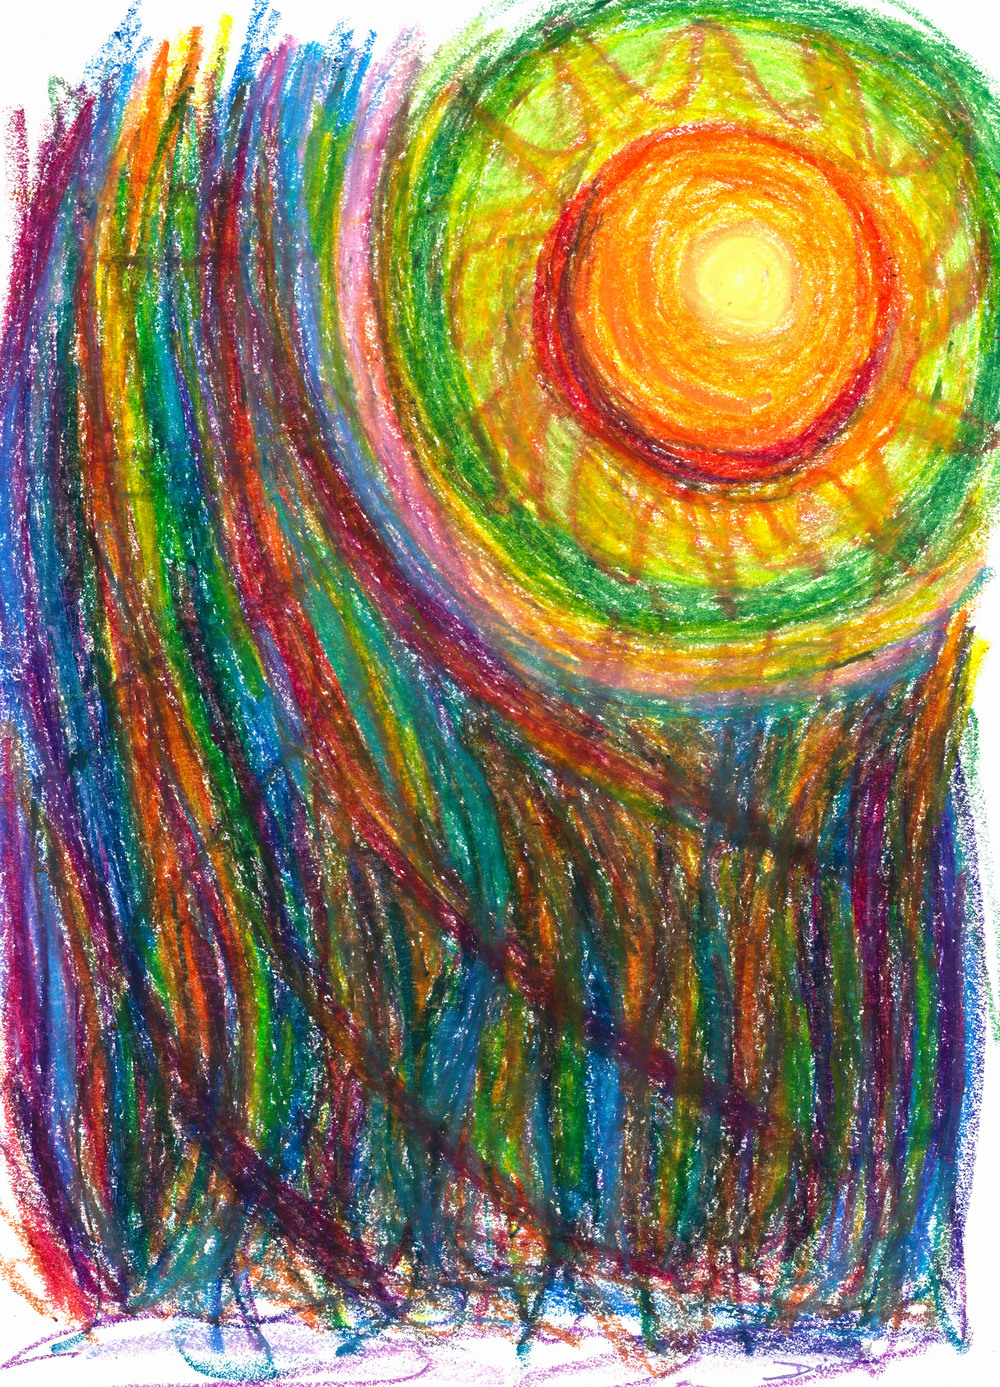 Starburst: The Nebular Dawning Of A New Myth And A New Age, 2012, Oil Pastel, 11 x 14 in